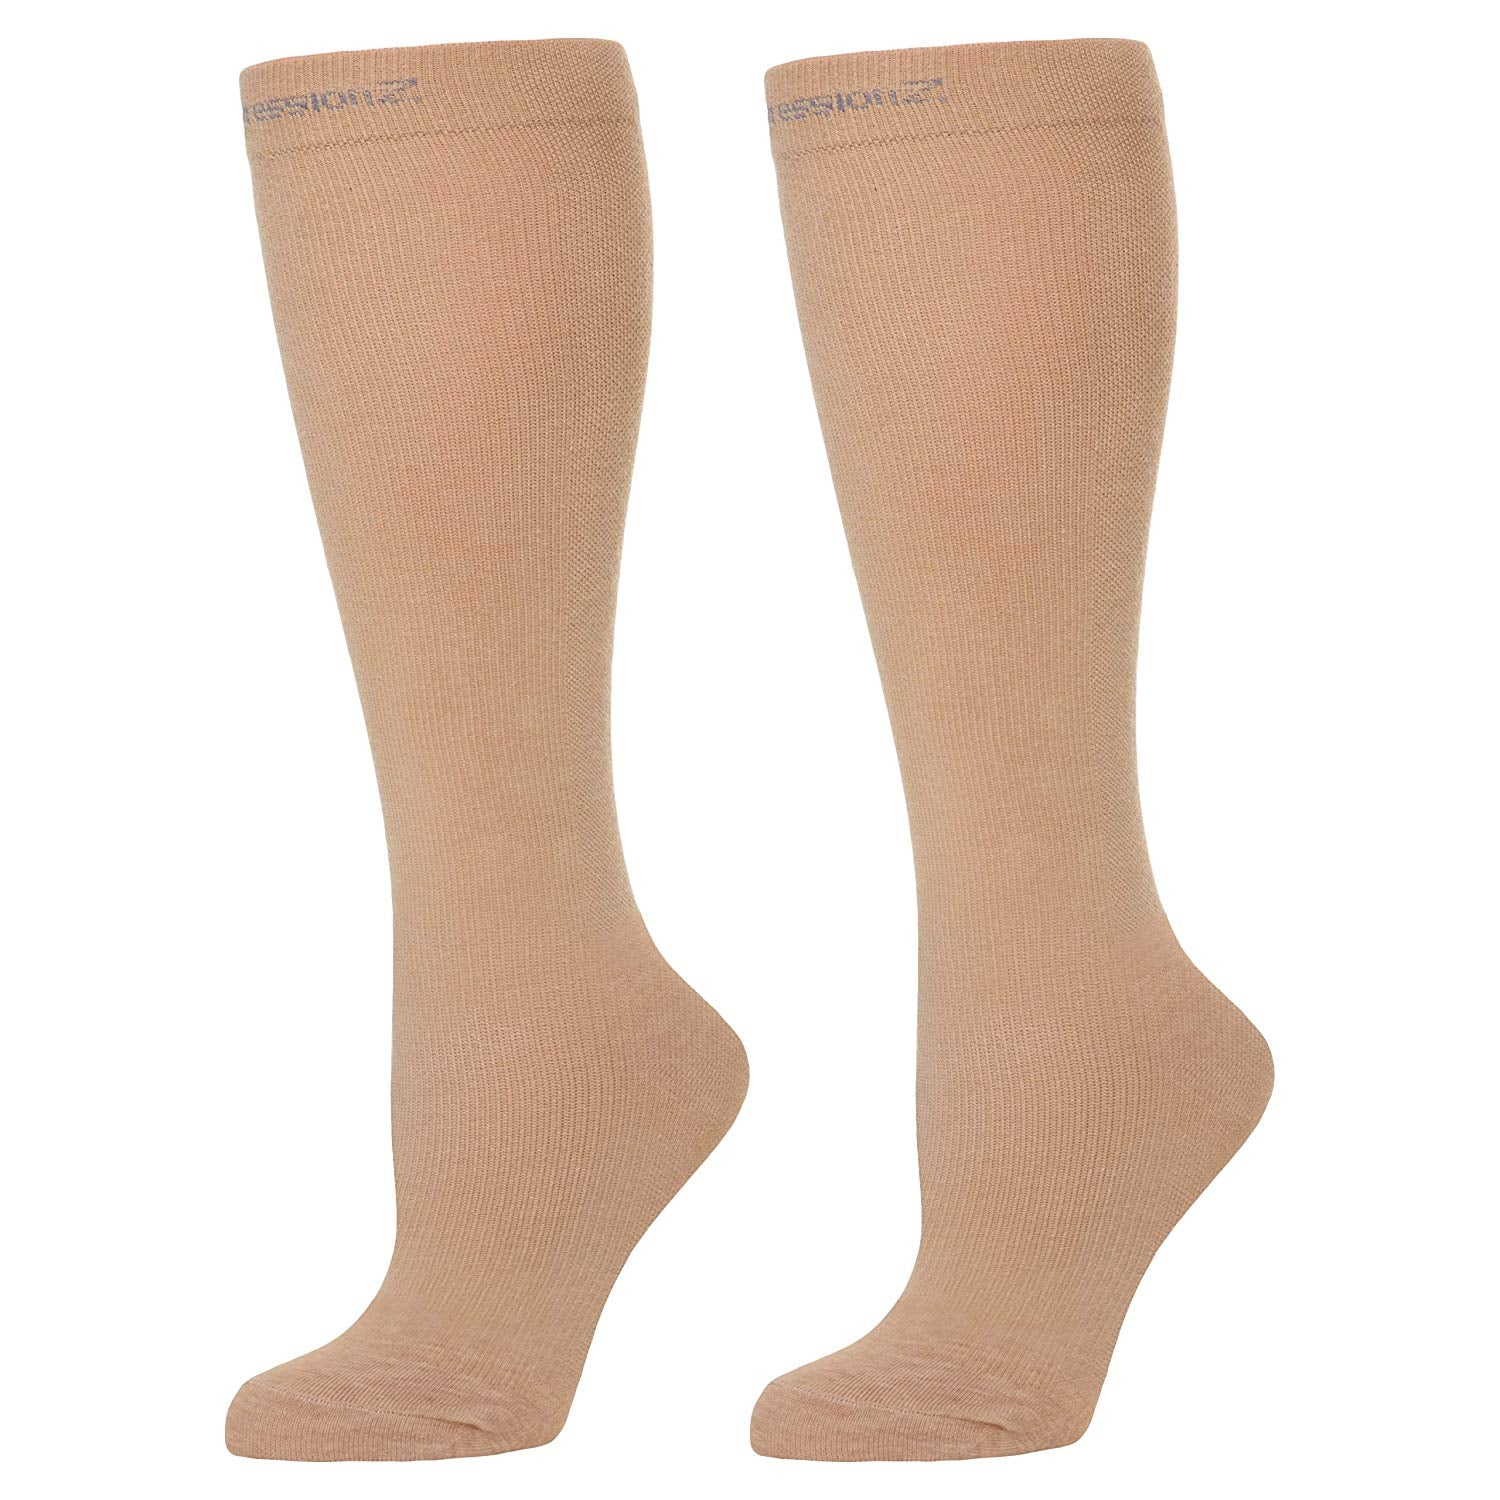 Compression Socks (20-30 mmHg) - Skin